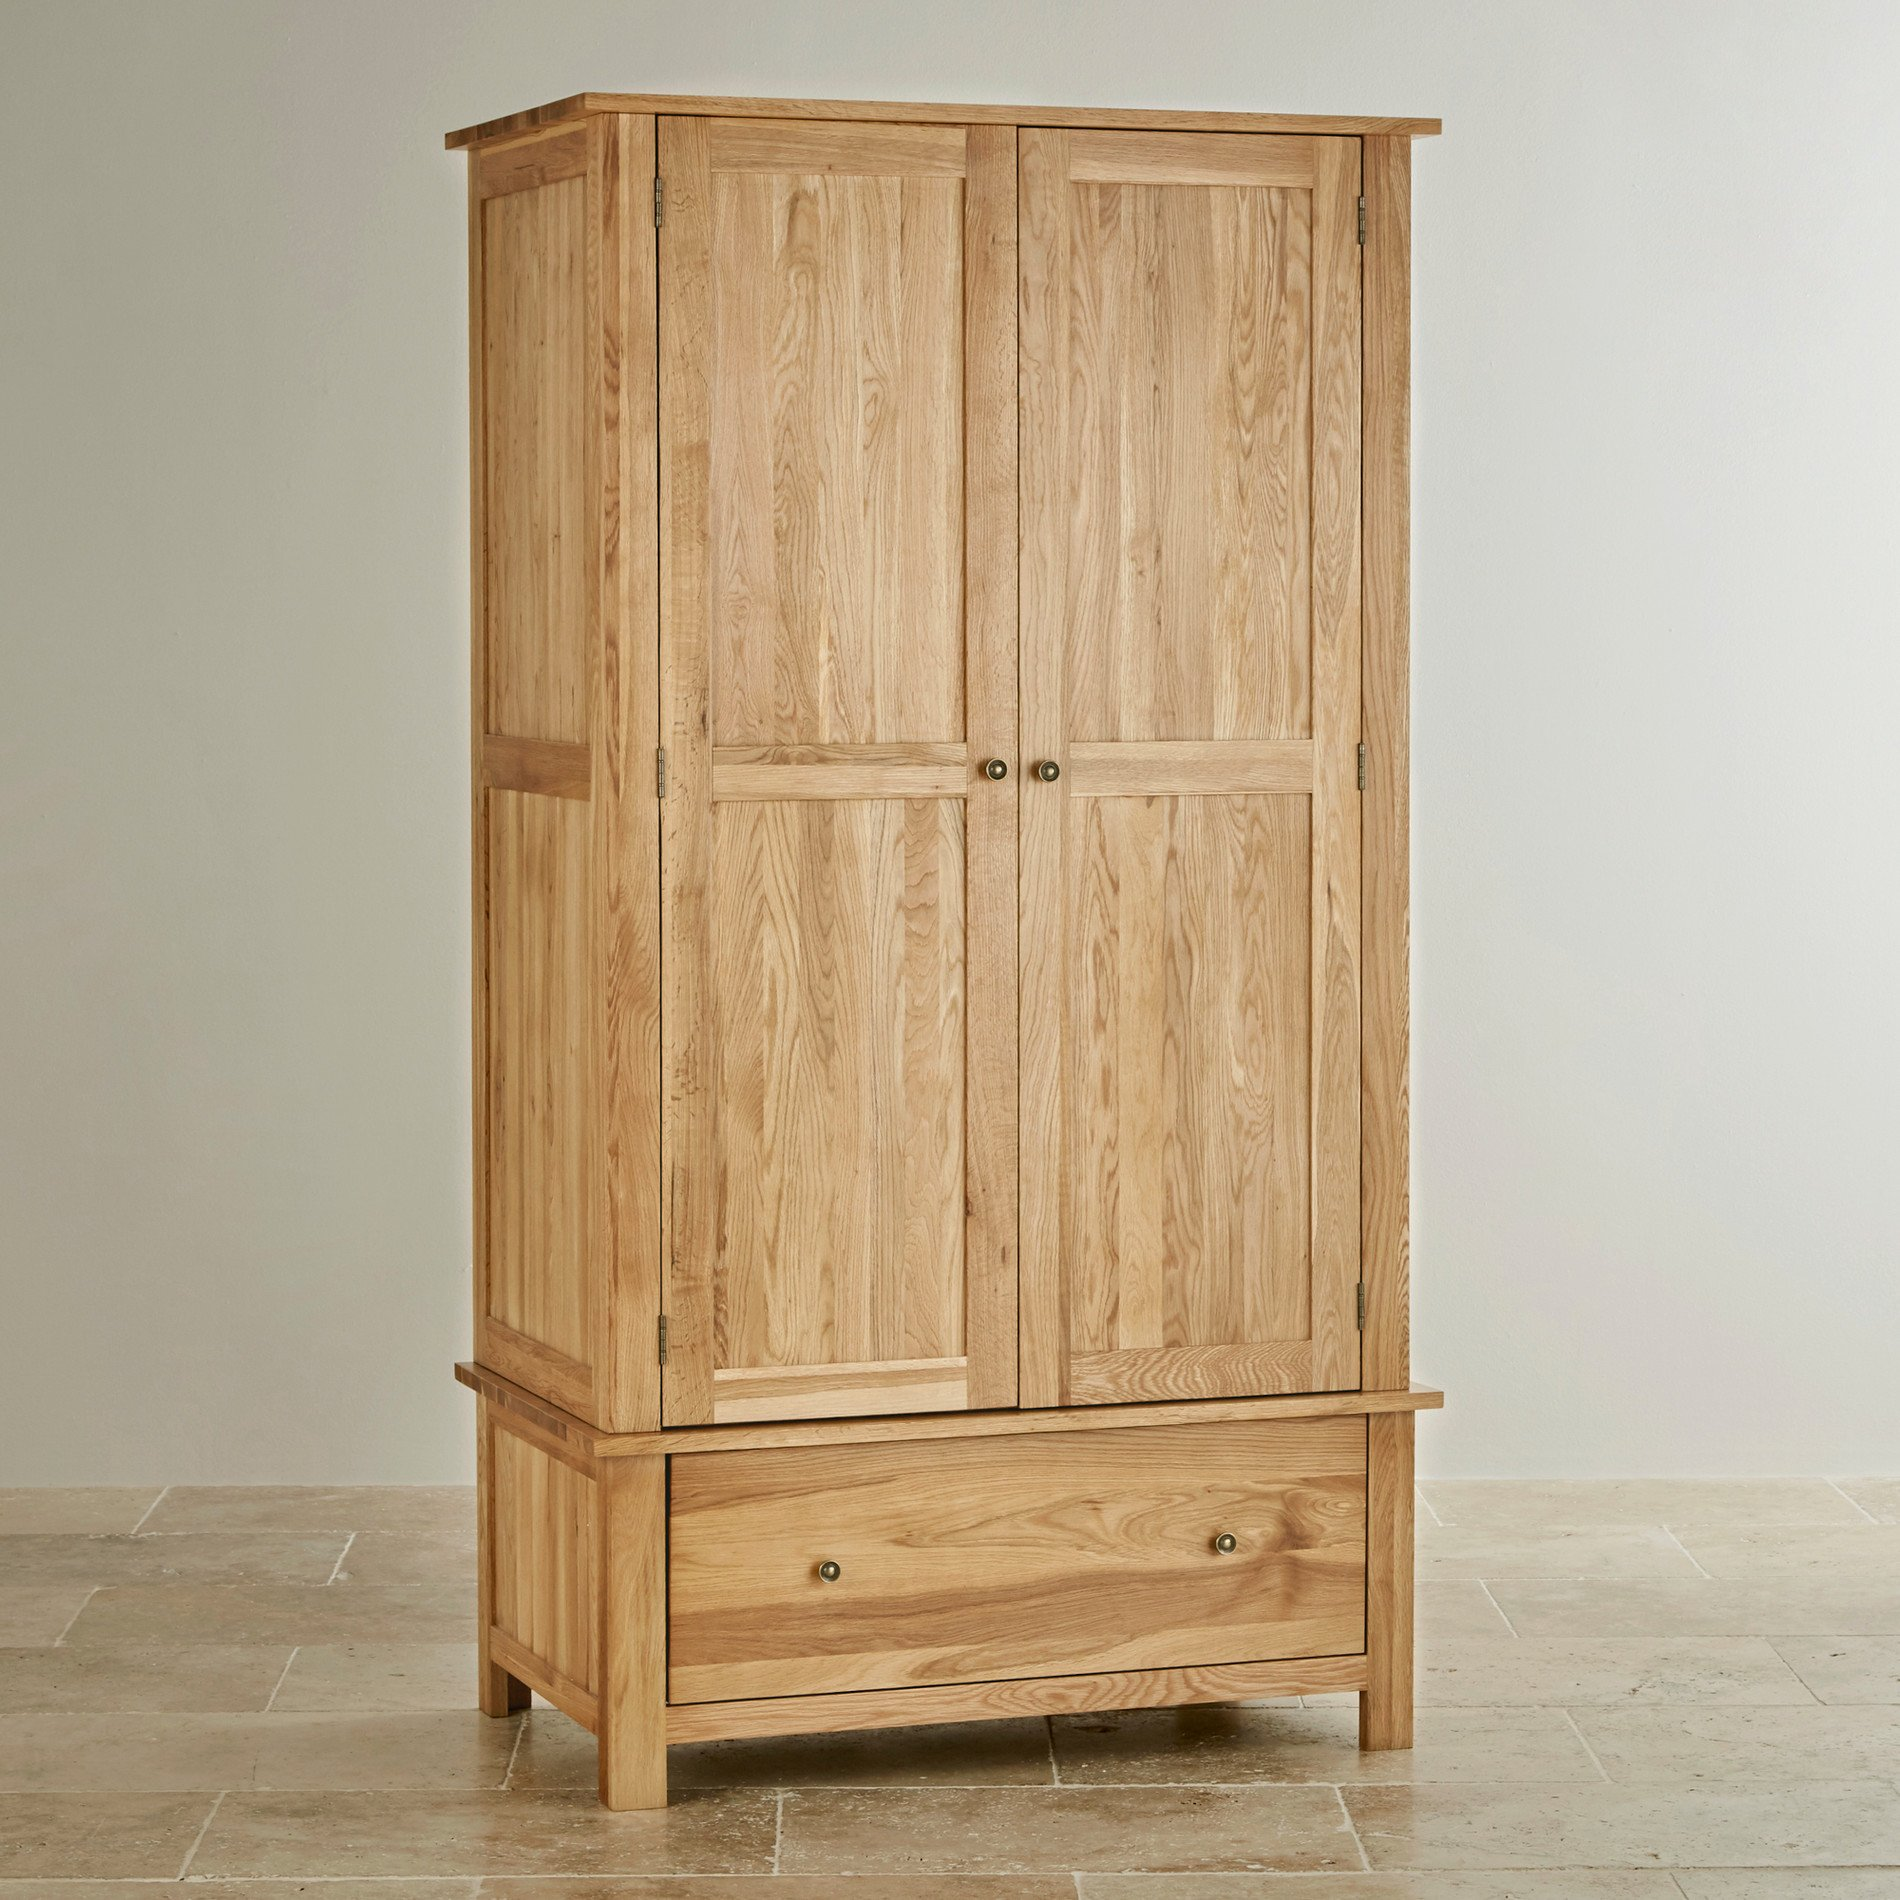 cairo natural solid oak double wardrobe bedroom furniture. Black Bedroom Furniture Sets. Home Design Ideas